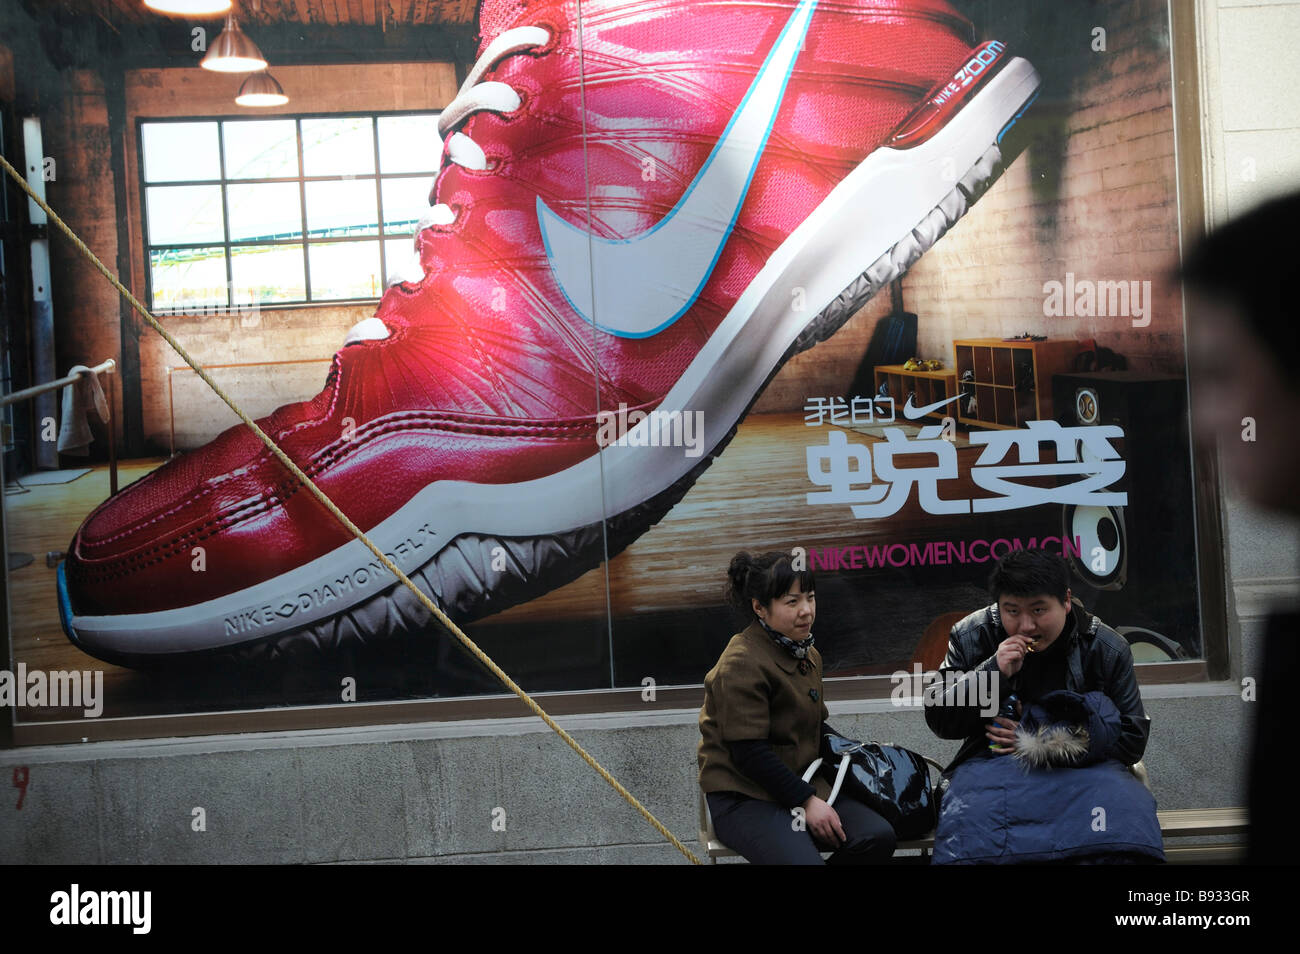 Nike Advertizing in Tianjin, China. 14-Mar-2009 - Stock Image